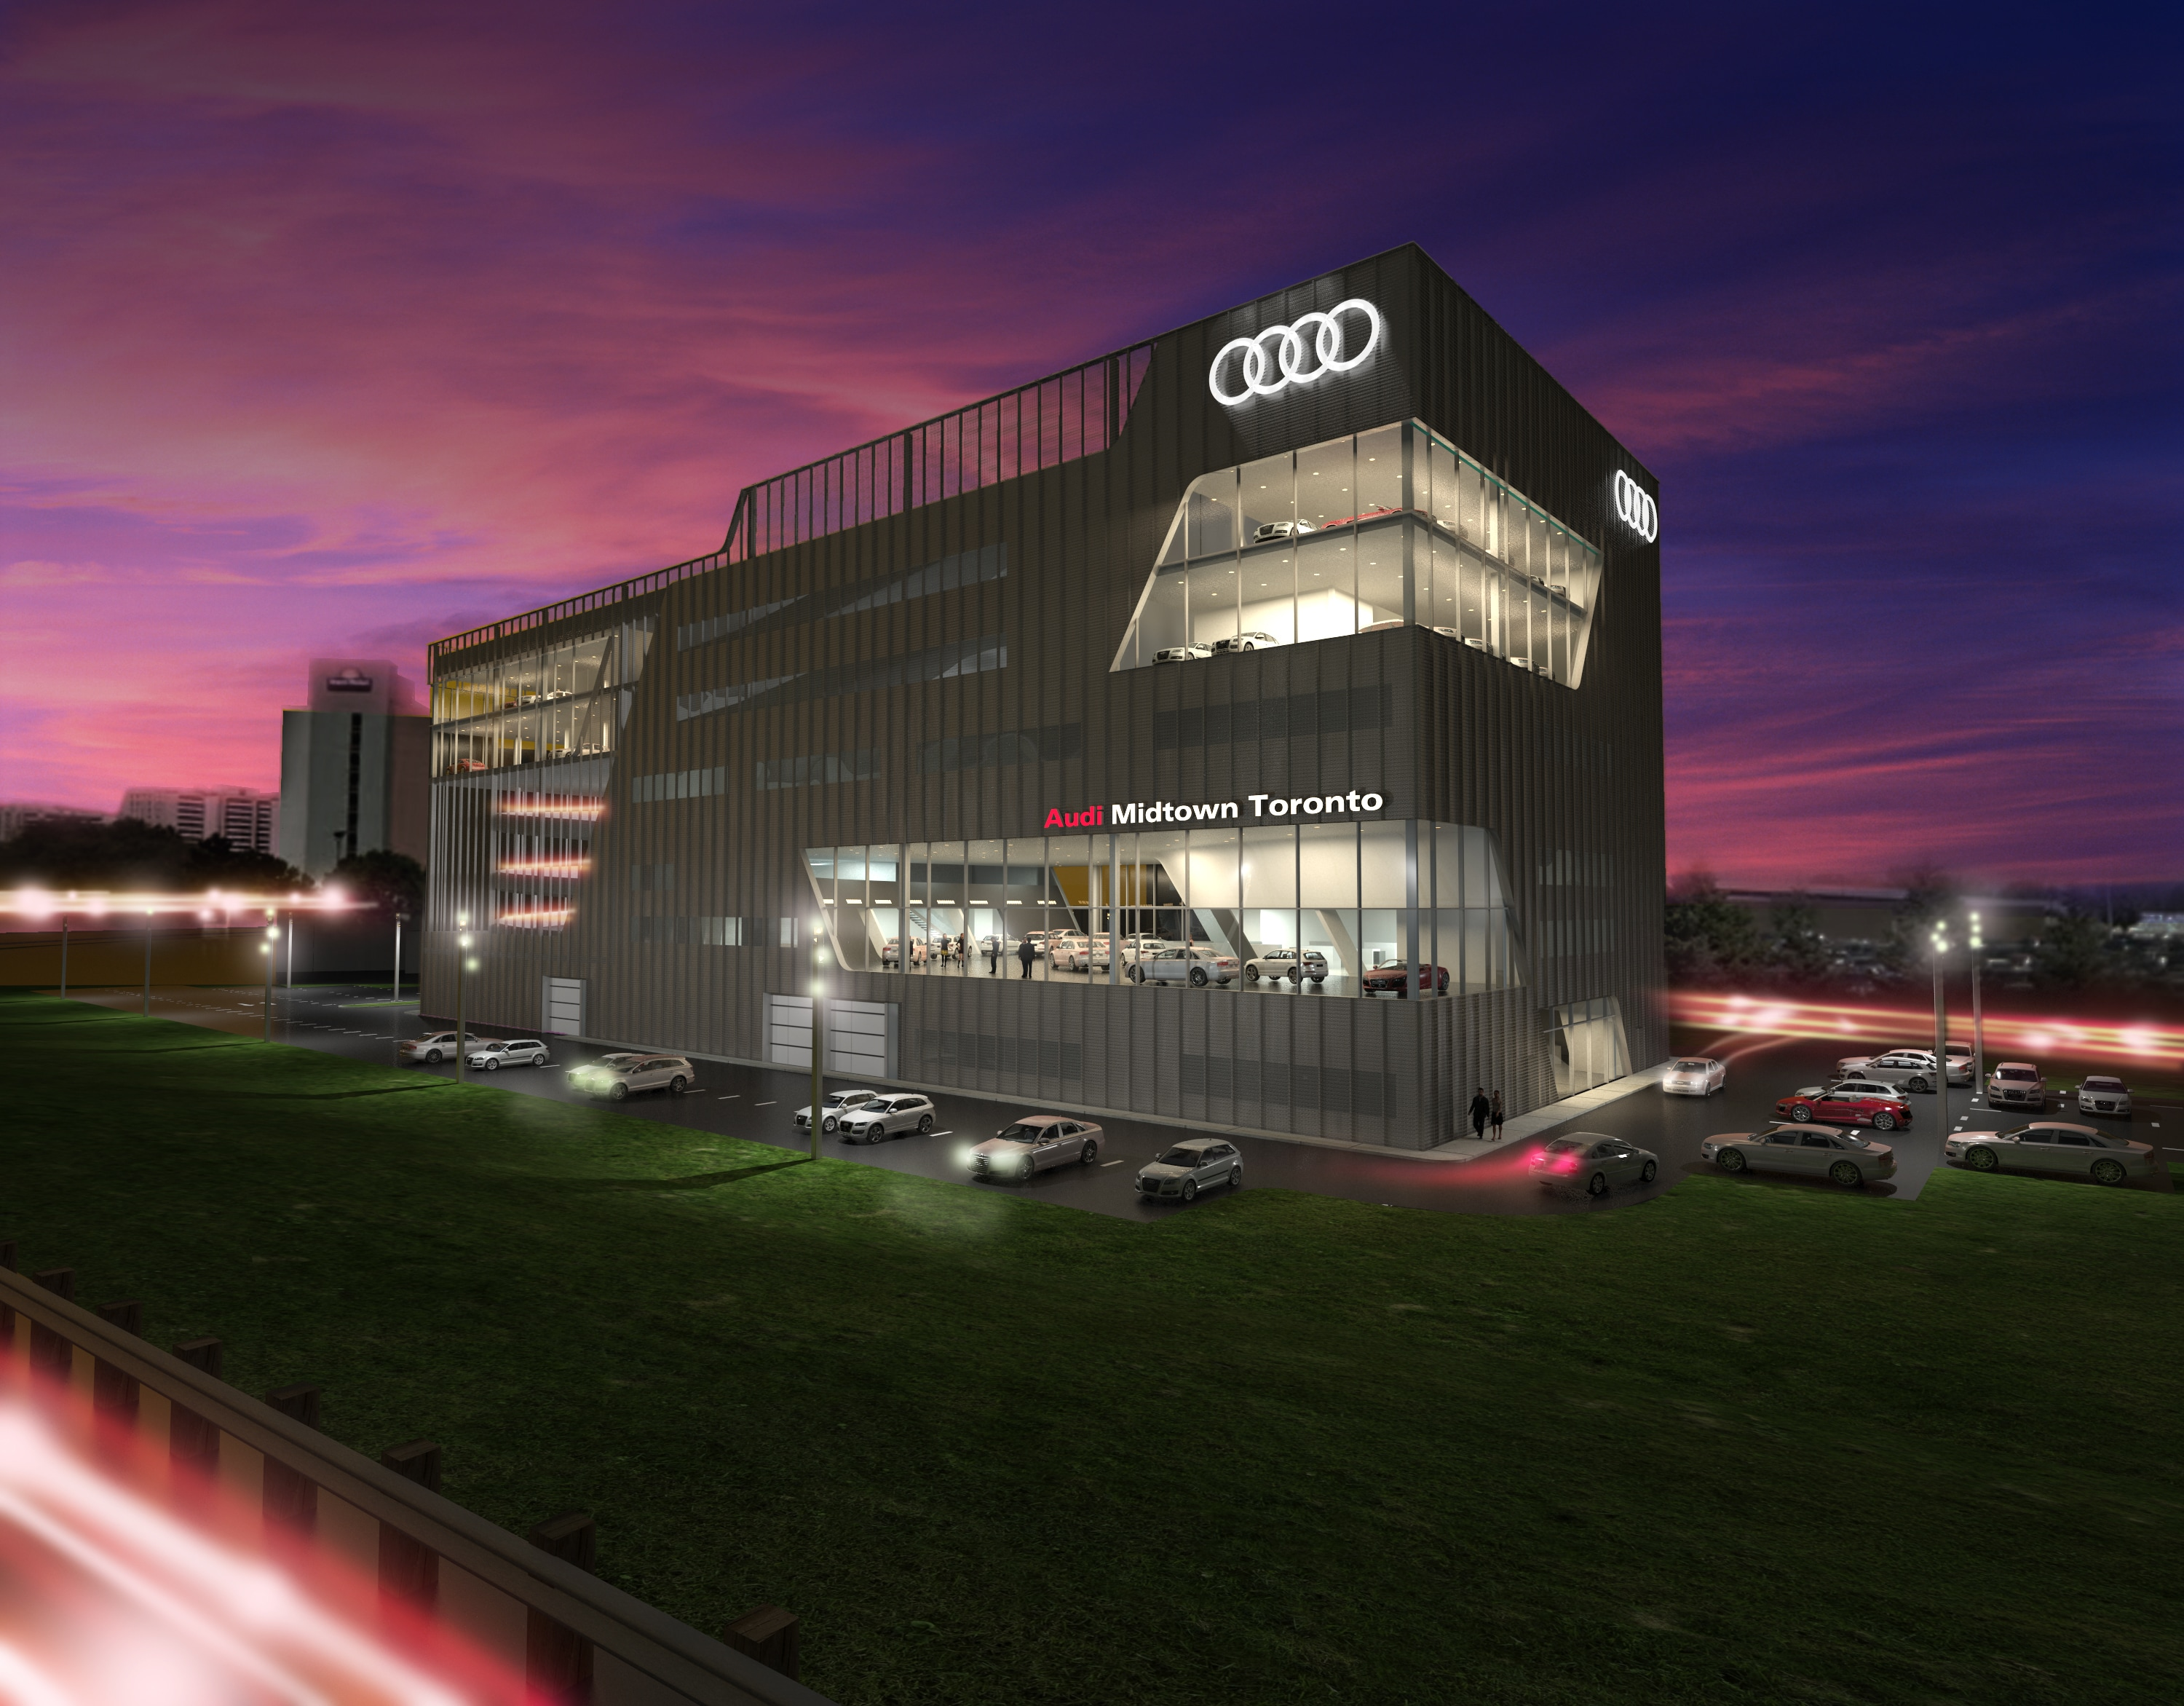 society dealer newsroom honors us releases audi magna dealers images en with awards